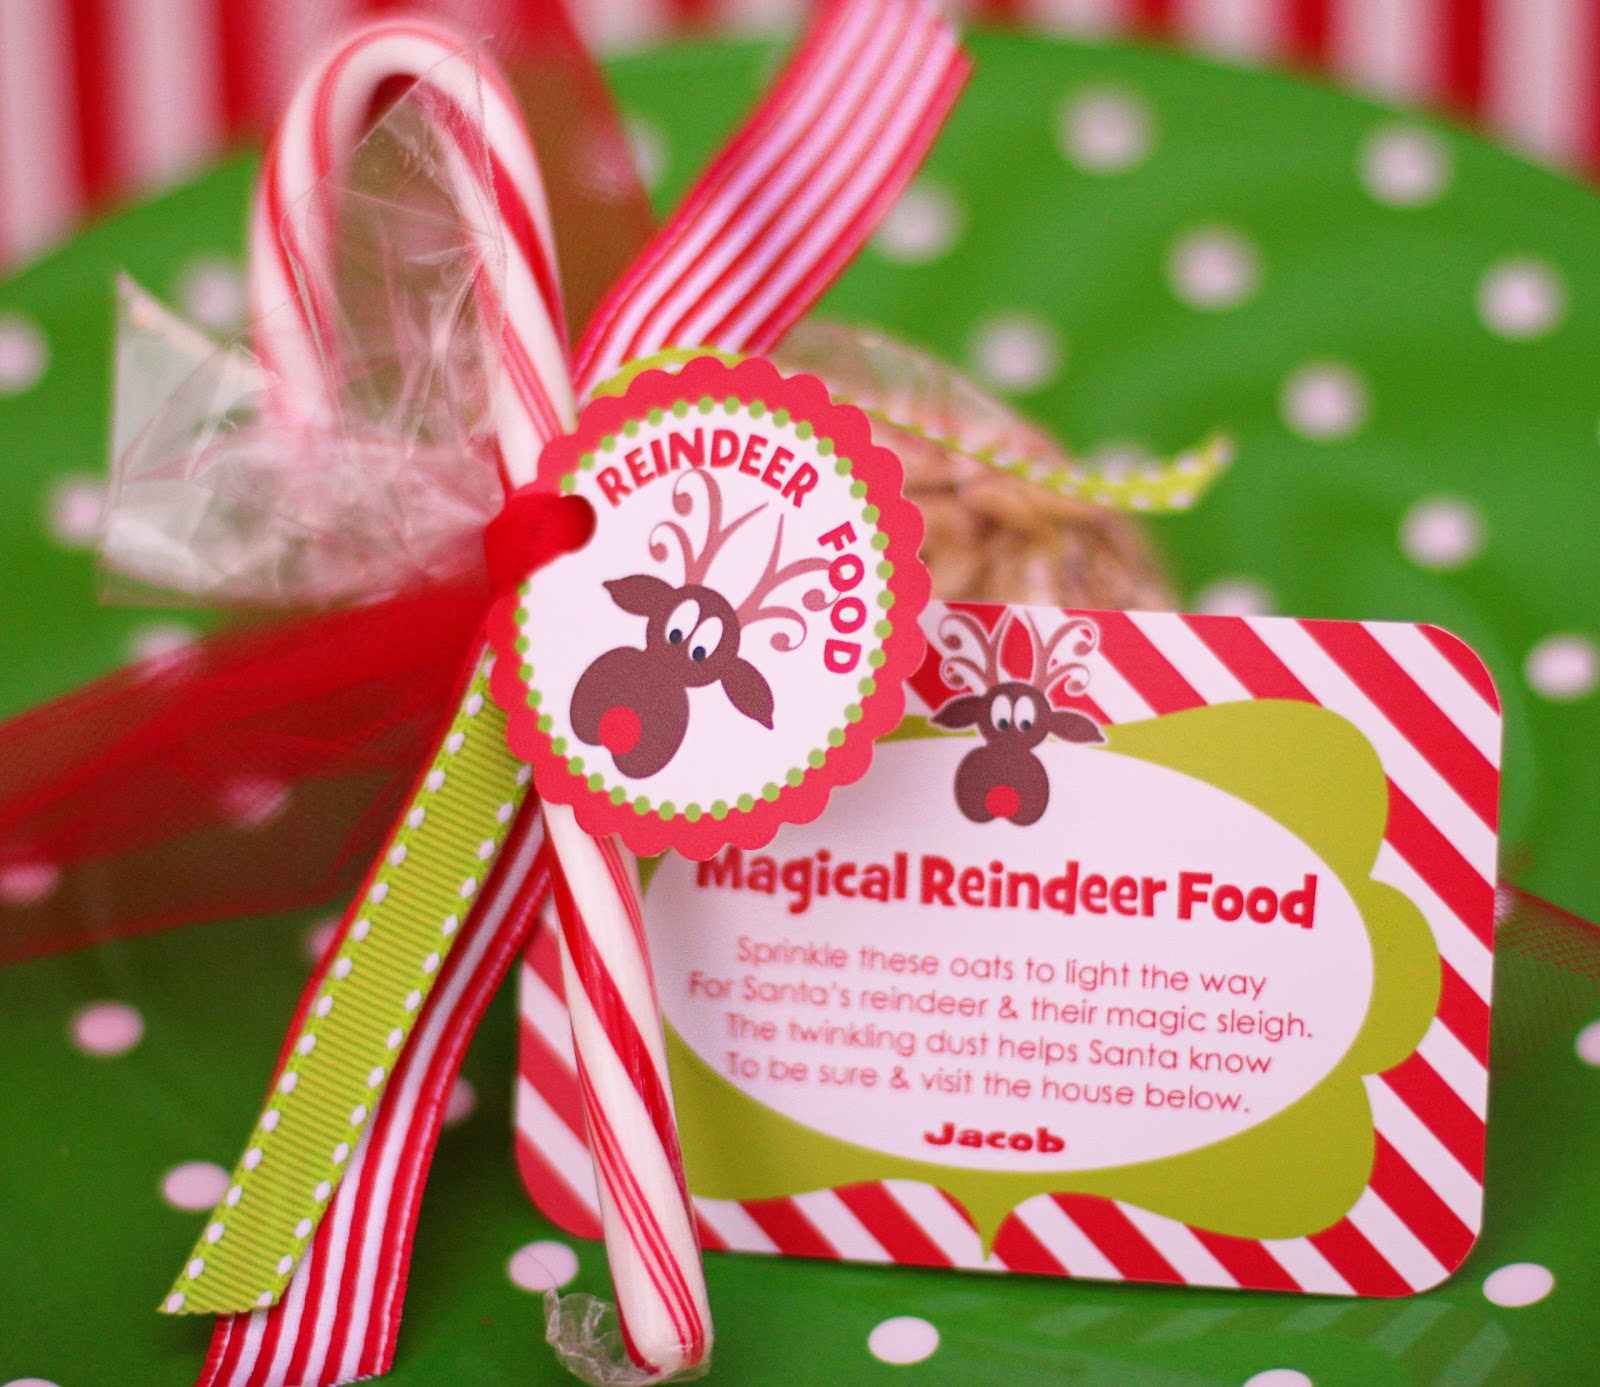 ... 1387 jpeg 341kB, Amanda's Parties To Go: FREE Reindeer Food Tags